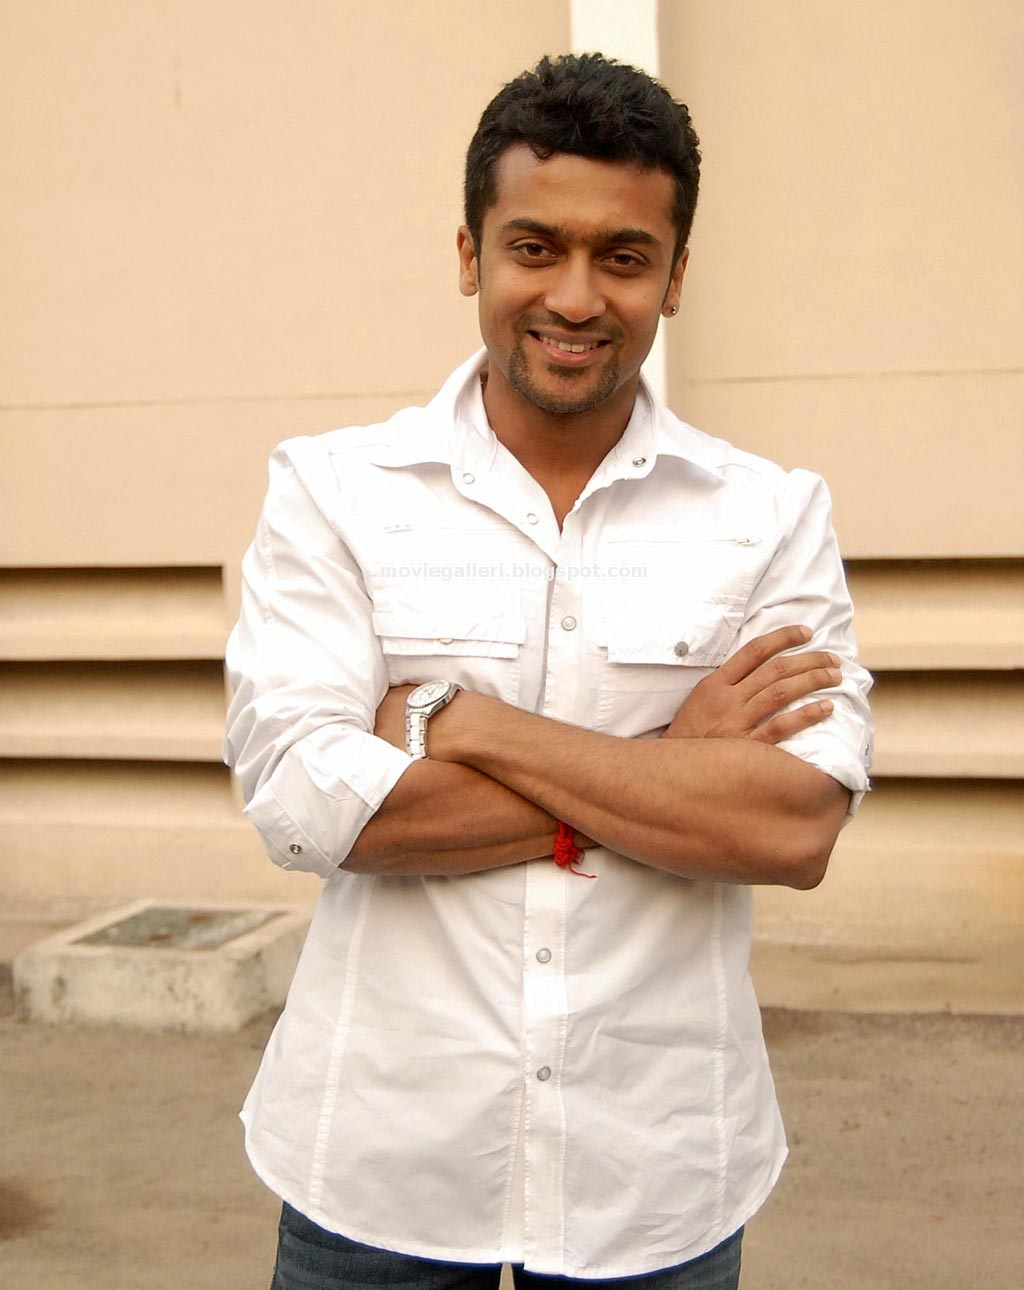 Surya Photos Latest http://wallpapersandlyrics.blogspot.com/2010/11/raktha-charithra-surya-latest.html